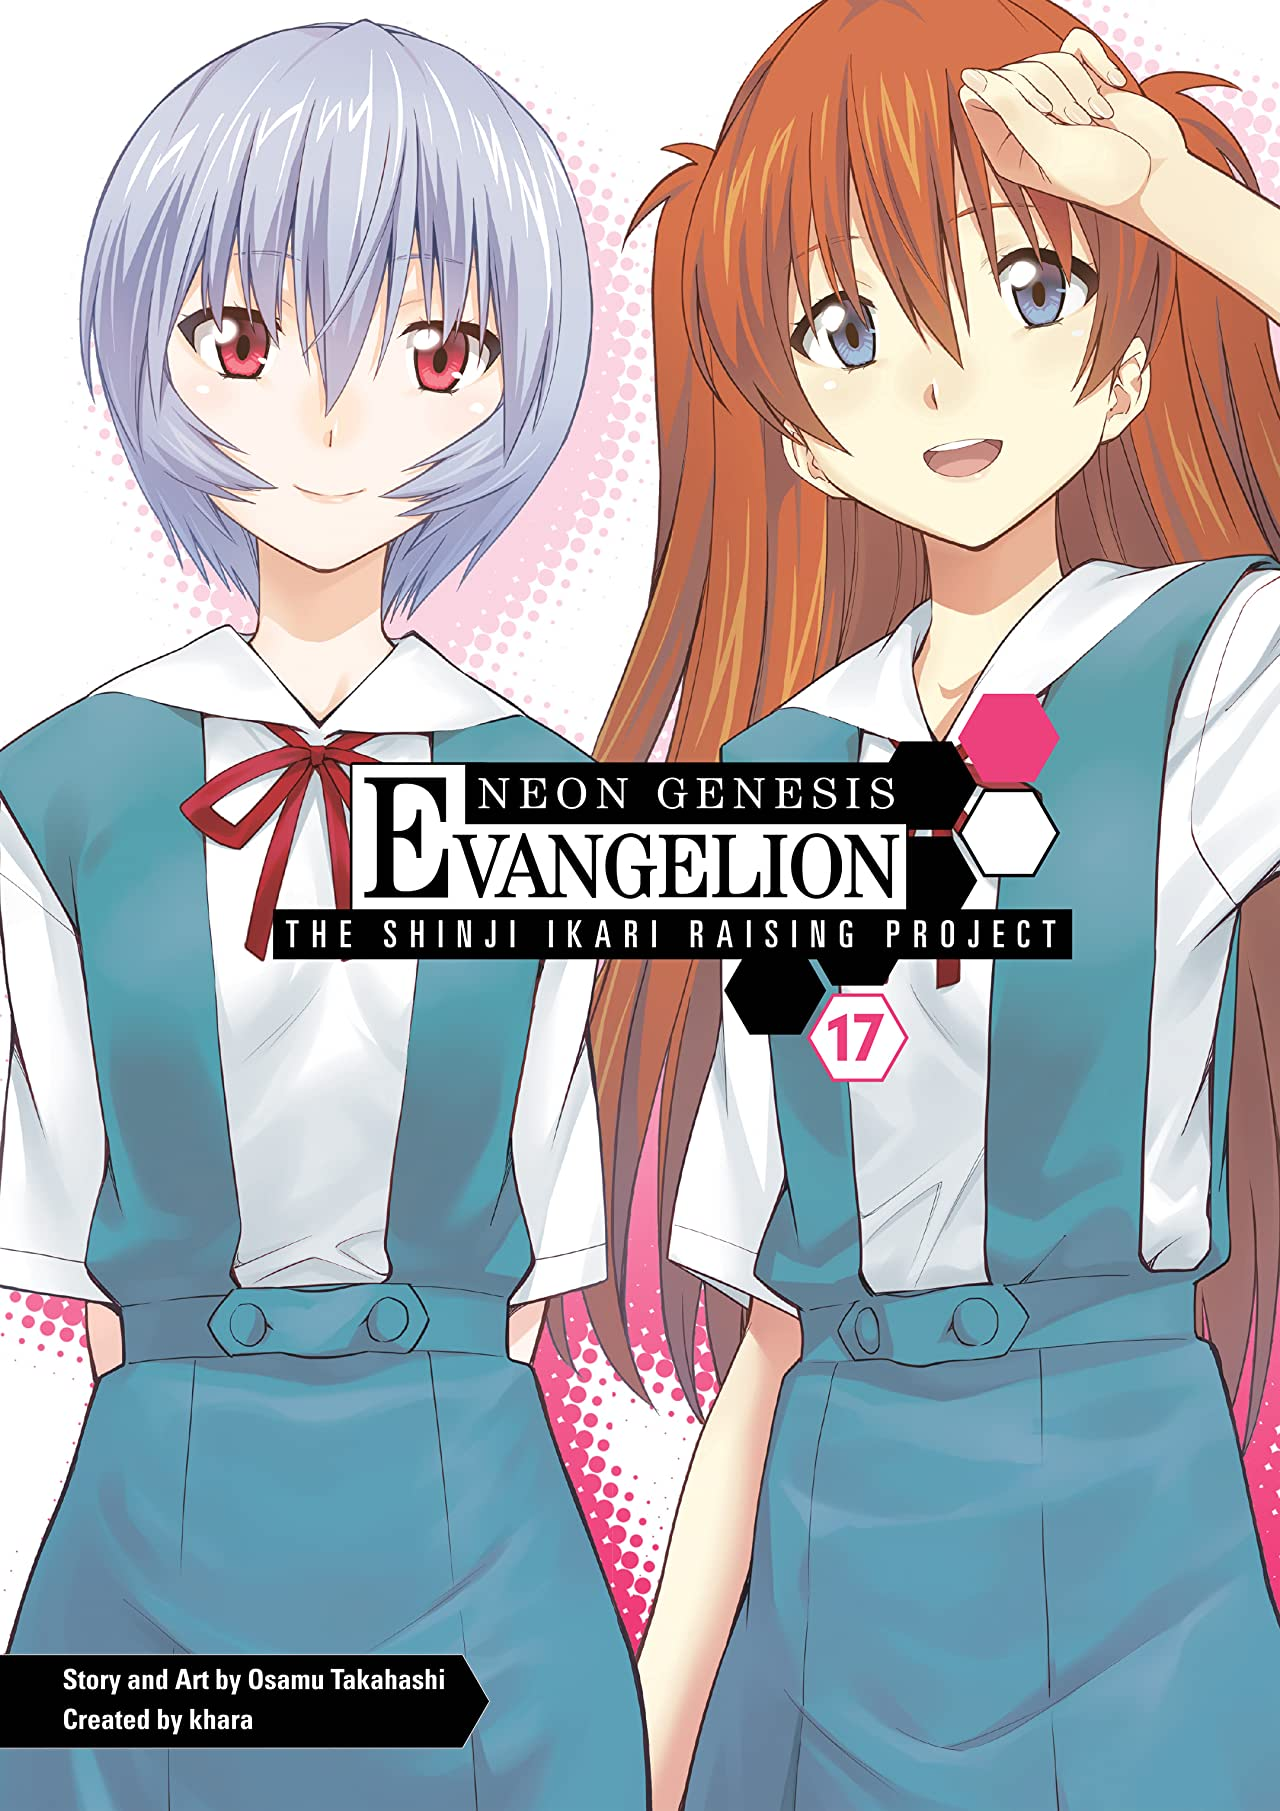 Neon Genesis Evangelion: The Shinji Ikari Raising Project Vol. 17